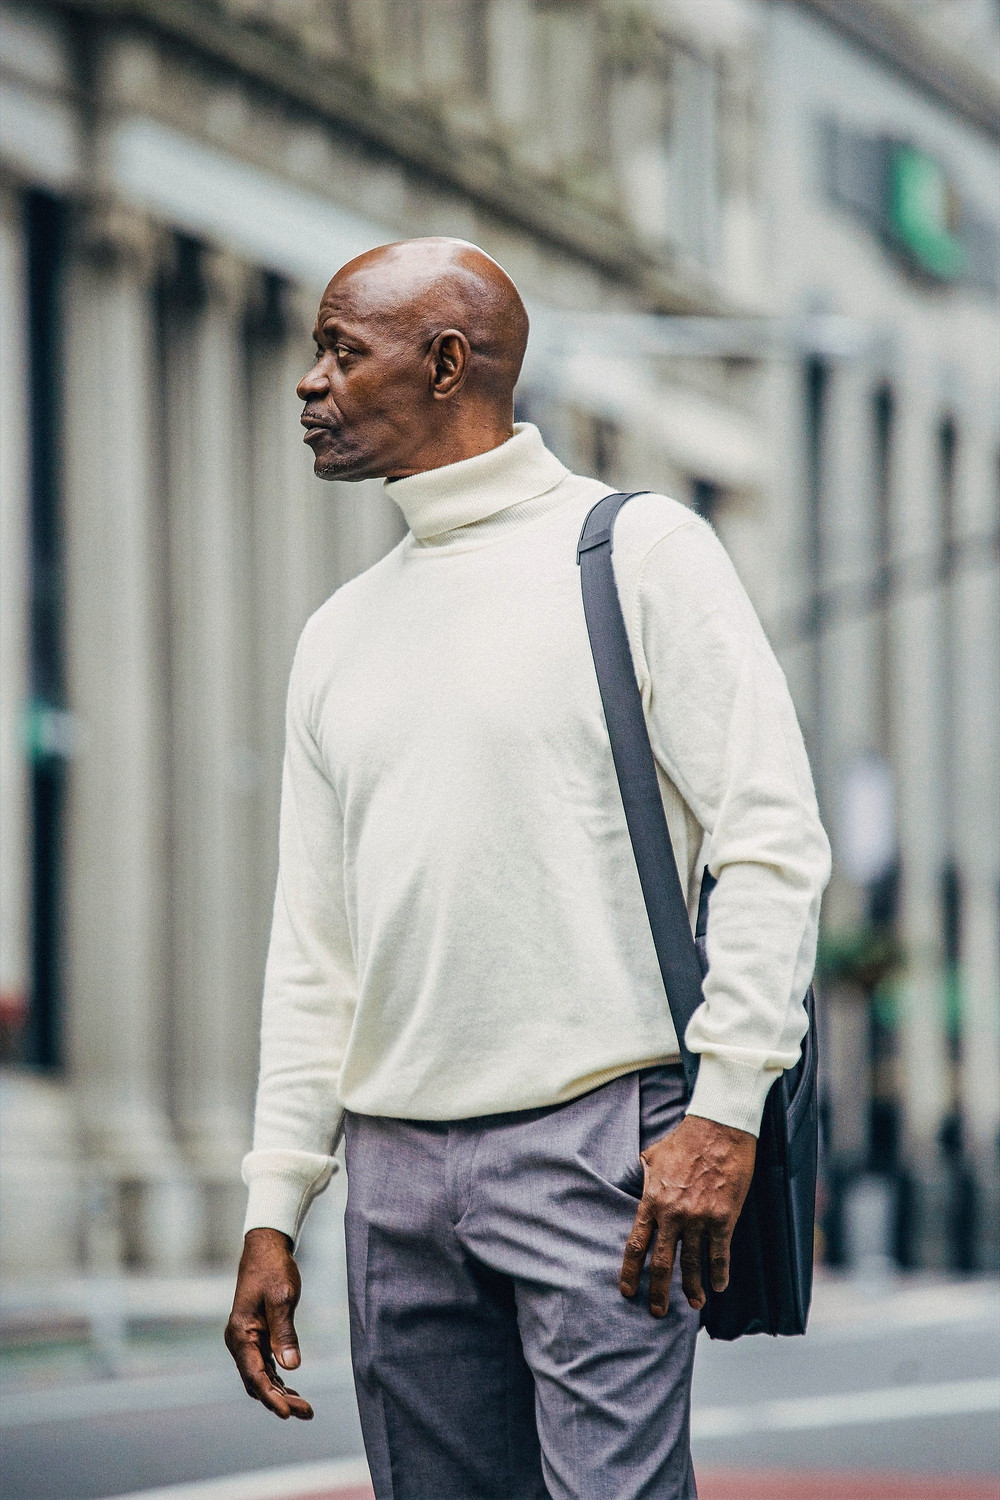 Well-dressed man sports a white knit turtleneck and hand bag draped over his left shoulder, while looking across the street in a metropolitan city.